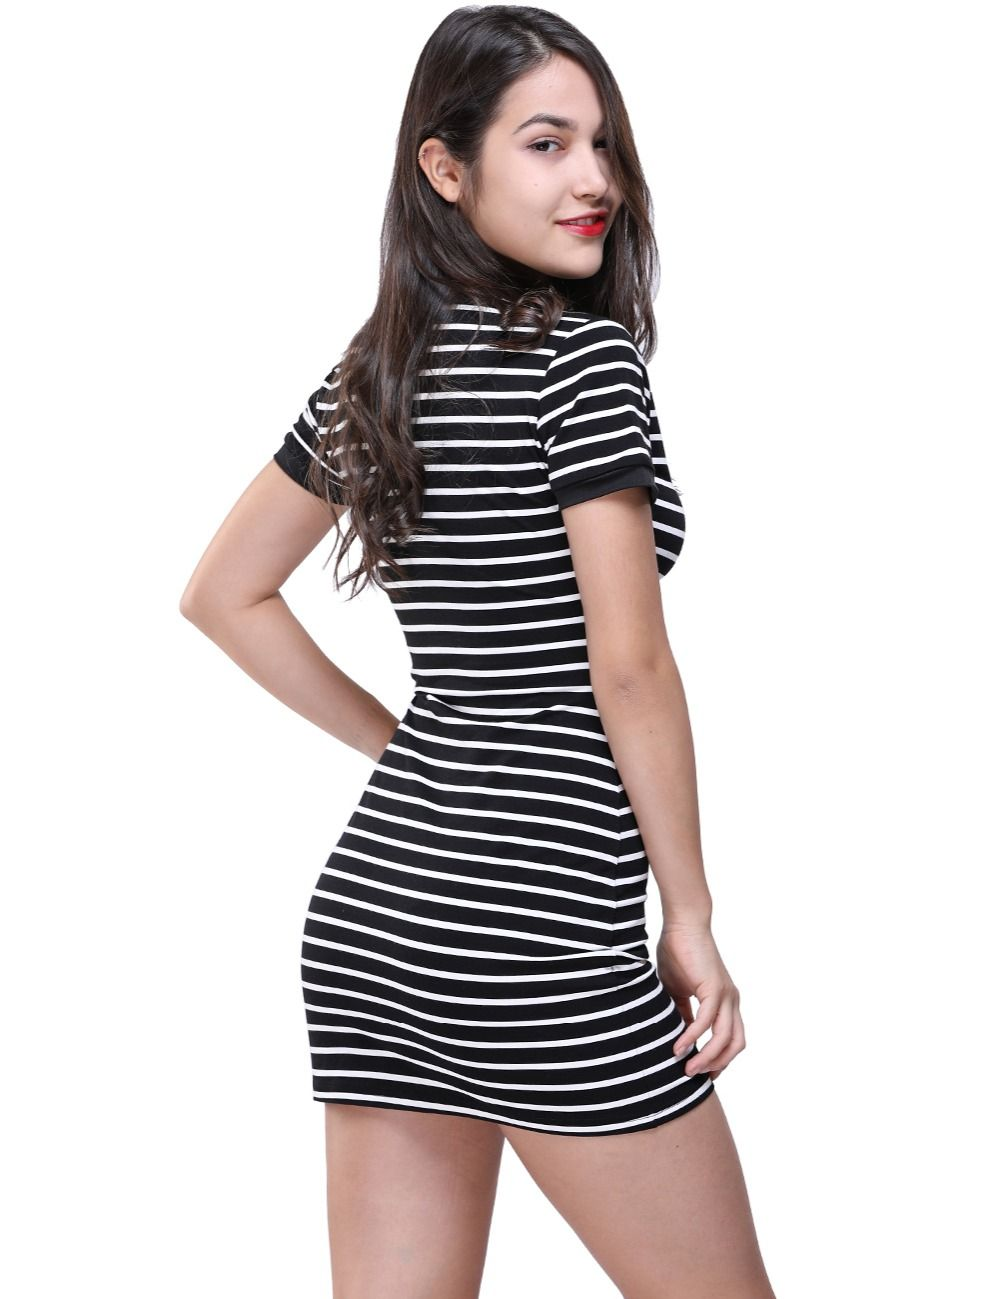 d34f889d1 Enough Stock Summer Round Neck Short-sleeved Dress Black And White Striped  Dresses Casual Elegant Sheath Slim Dress Dropshipping